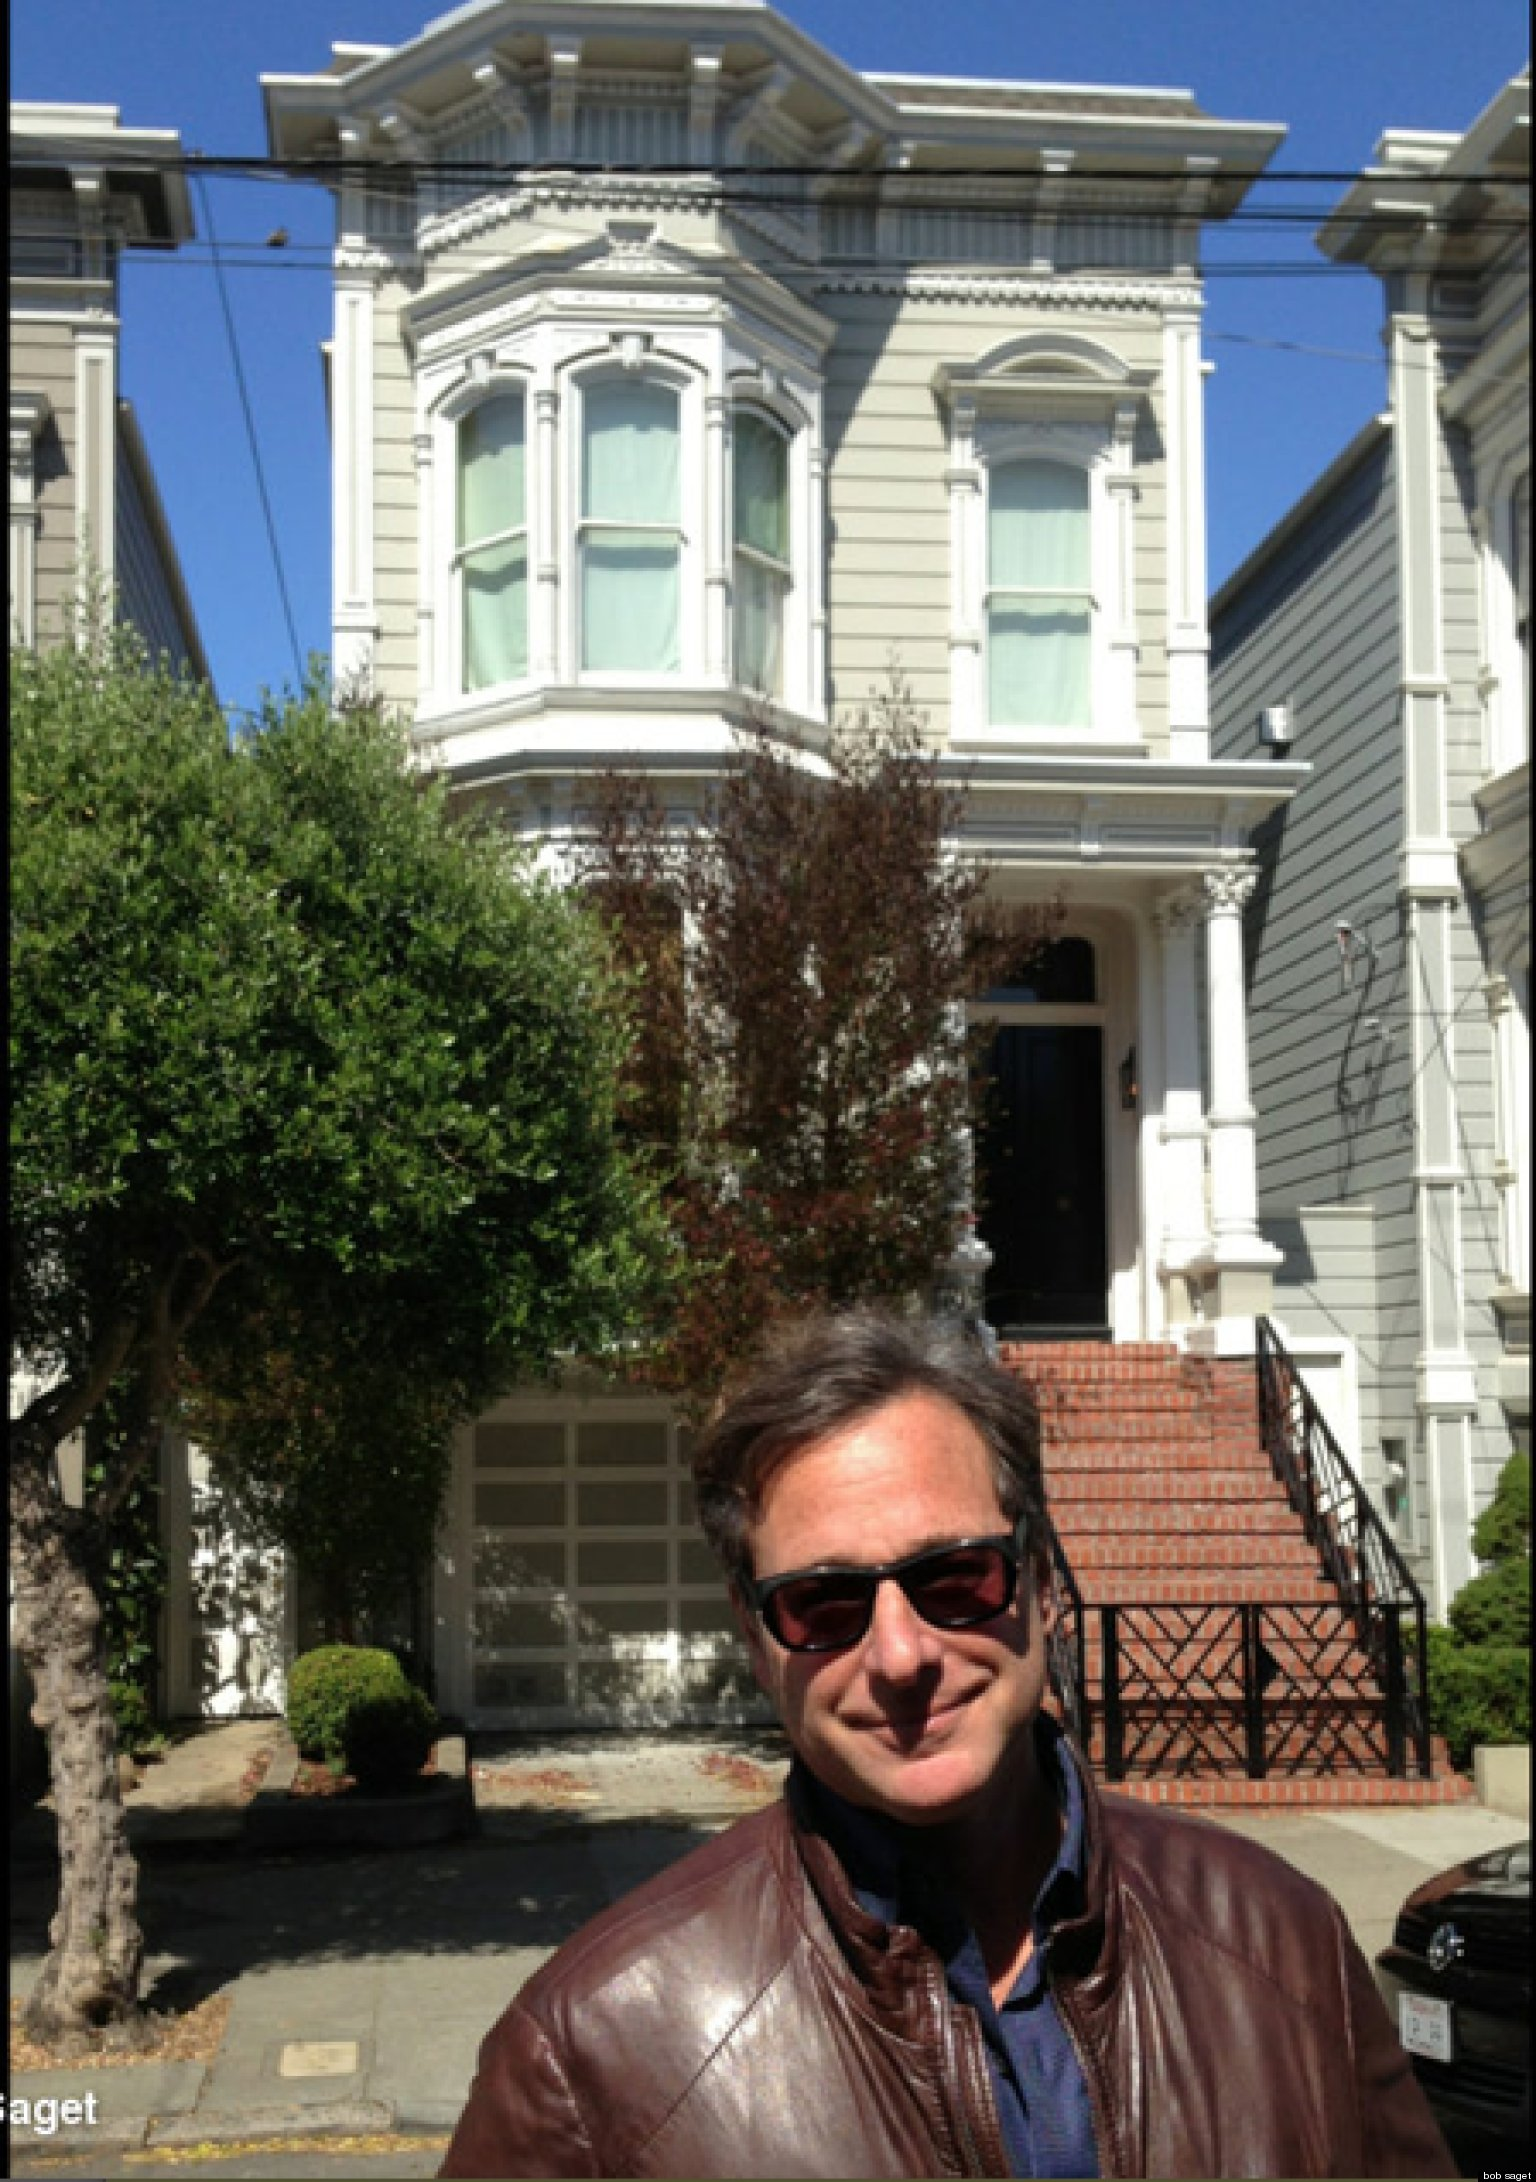 39 full house 39 bob saget stops by san francisco house calls it 39 creepy 39 photo huffpost. Black Bedroom Furniture Sets. Home Design Ideas